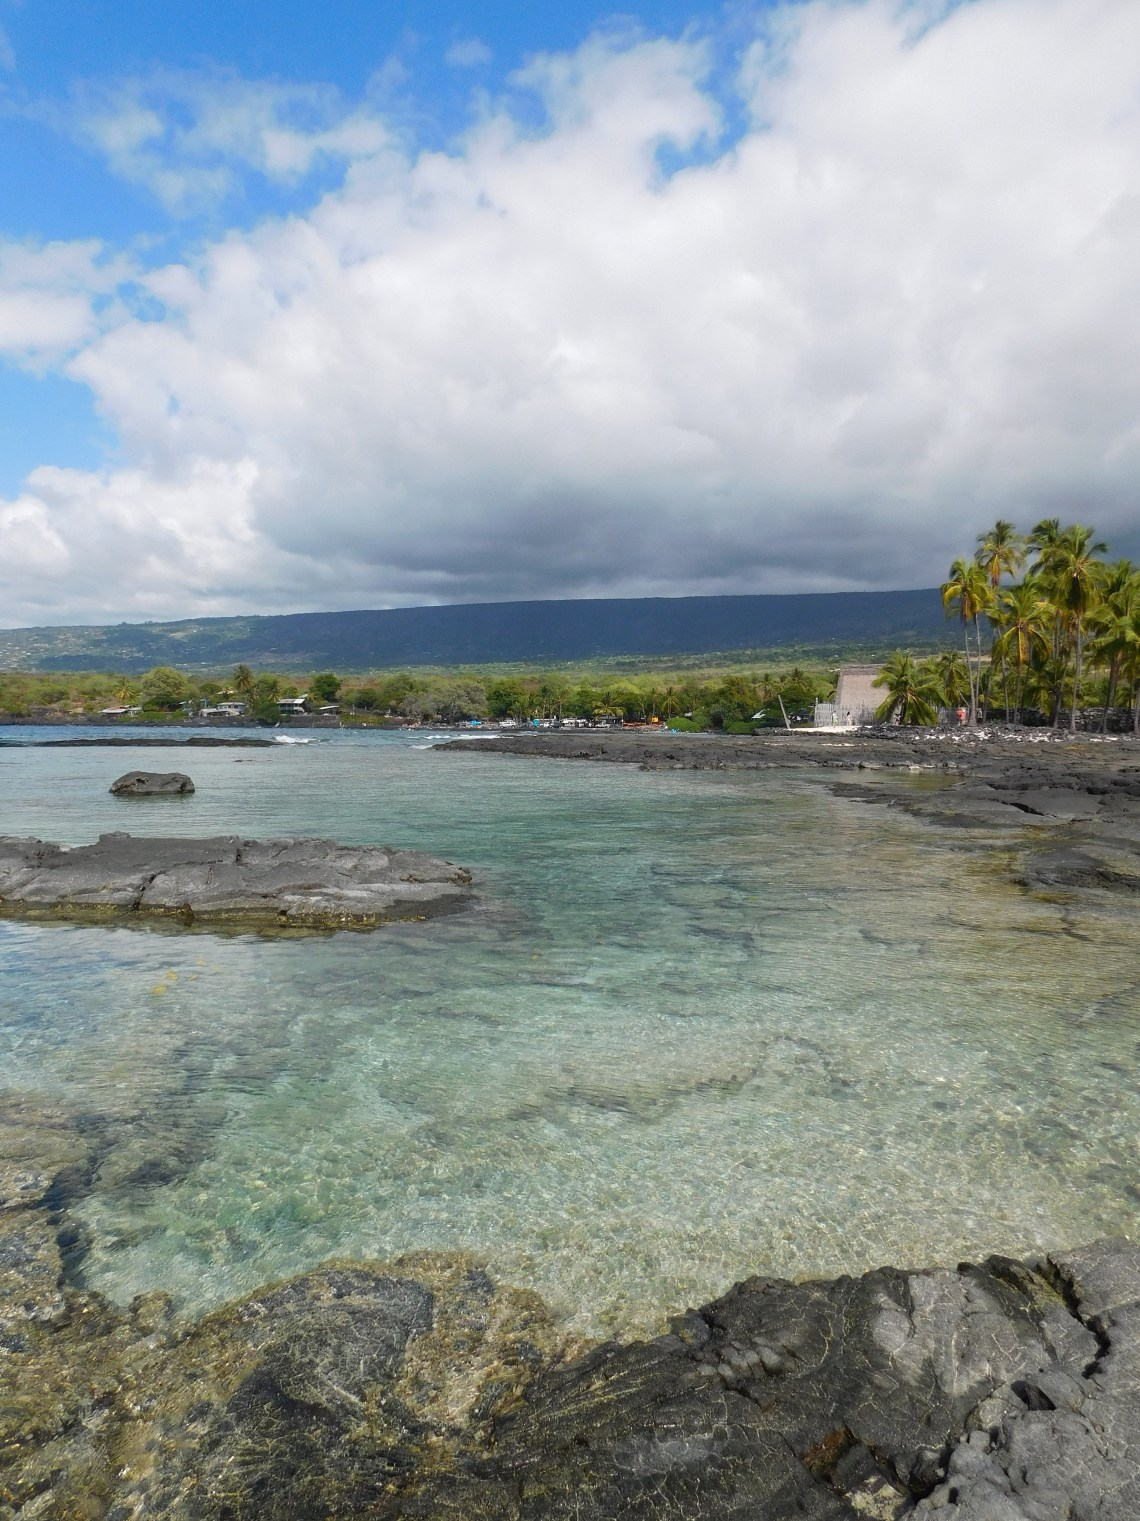 Rock pools at Puʻuhonua o Hōnaunau National Historical Park on the Big Island of Hawaii